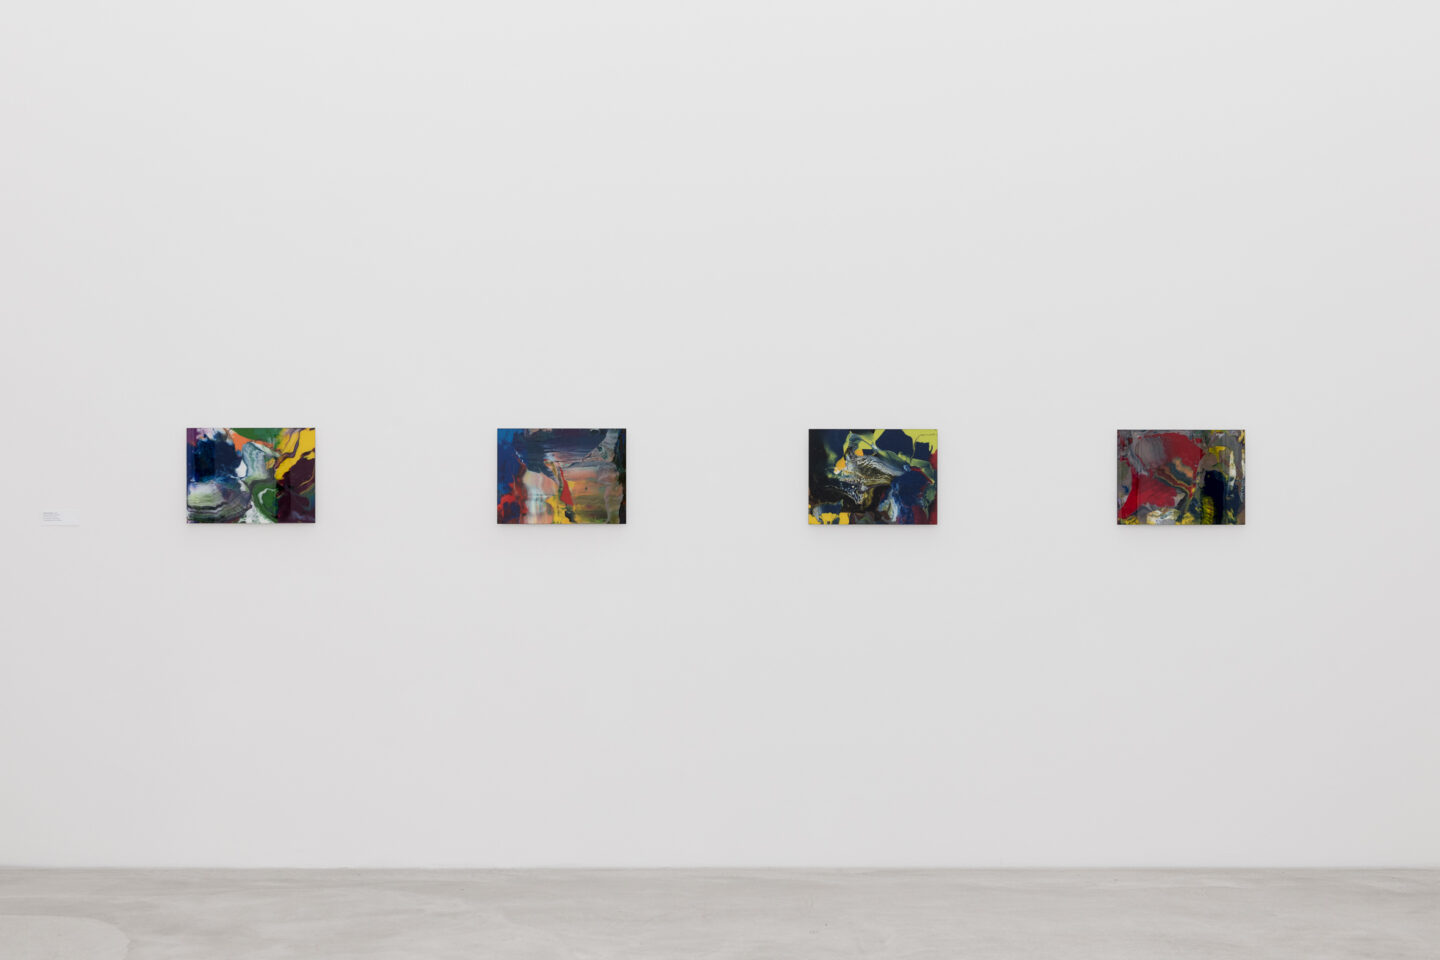 Exhibition View Groupshow «Frozen Gesture ; view on Gerhard Richter, Bagdad (914-9), 2010, Bagdad (914-12), 2010, Bagdad (914-13), 2010, Bagdad (914-14), (Courtesy: Gerhard Richter, 2019)» at Kunstmuseum Winterthur, 2019 / Photo: Sebastian Stadler